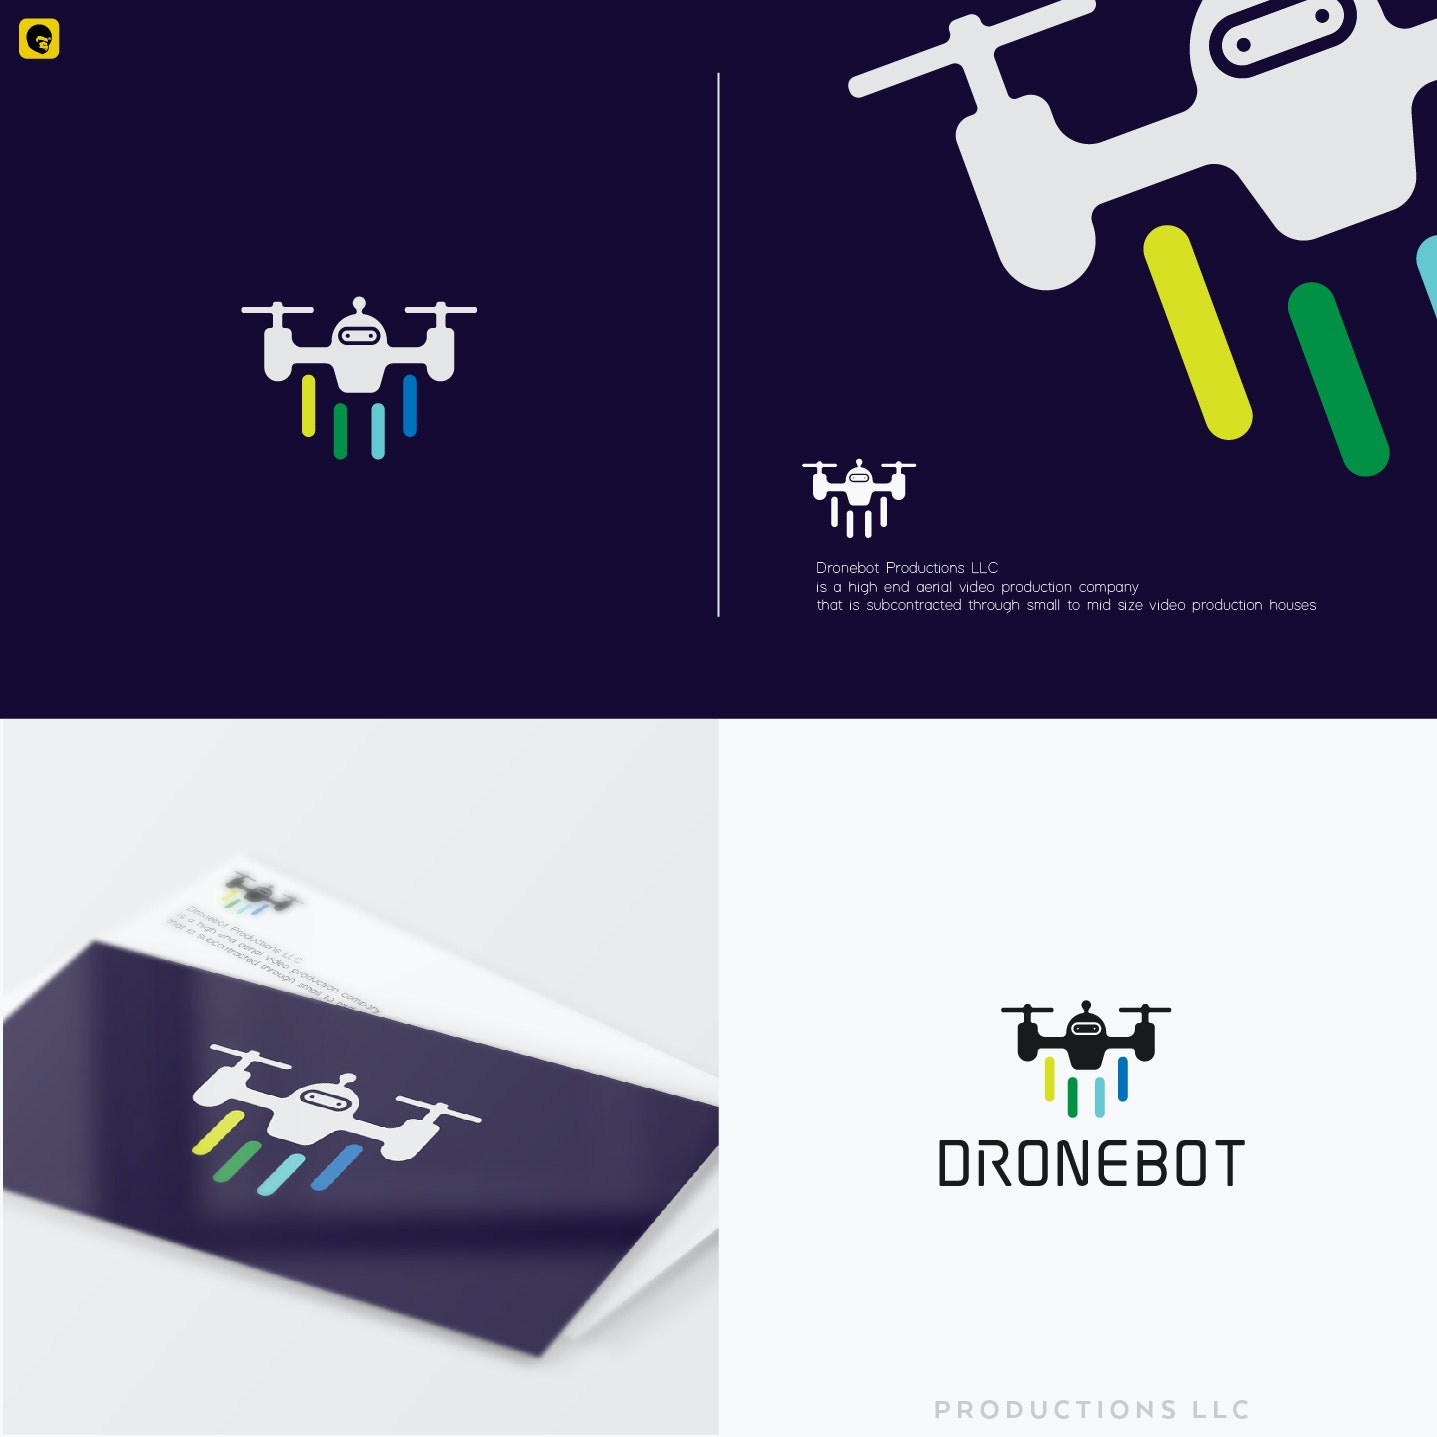 Dronebot Productions, LLC branding package